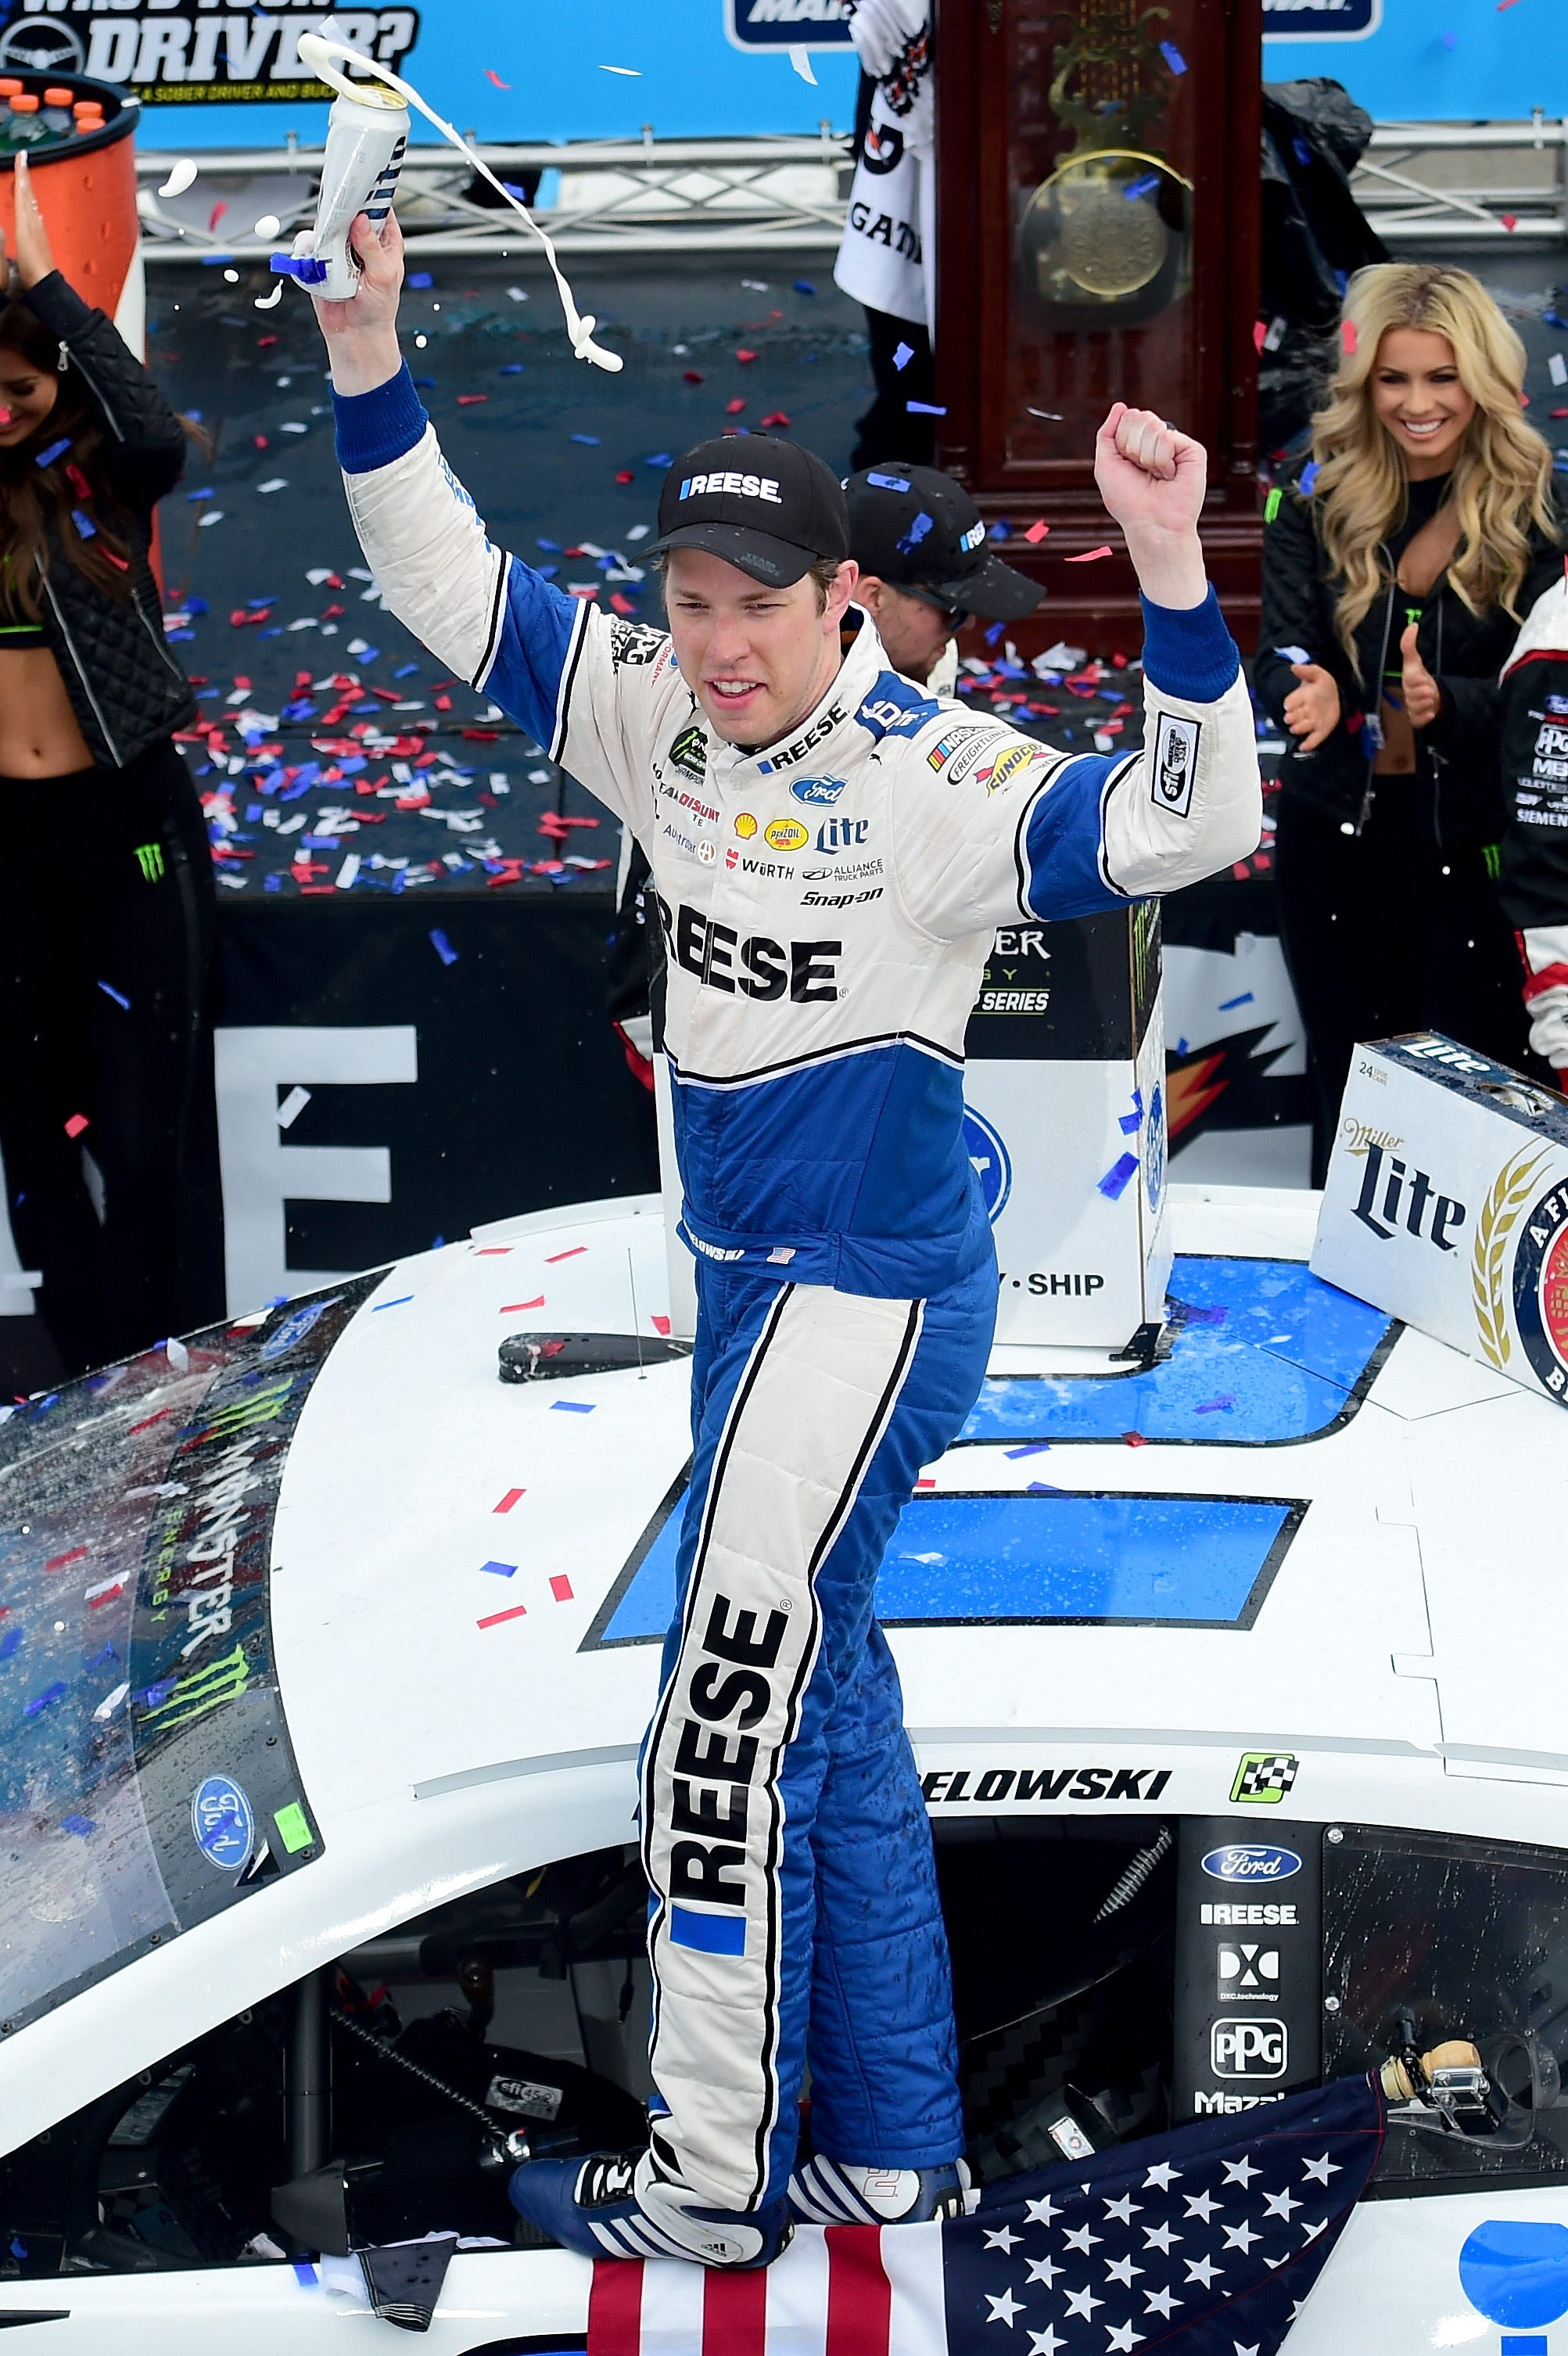 brad-keselowski-dominates-martinsville-for-second-cup-series-win-of-season